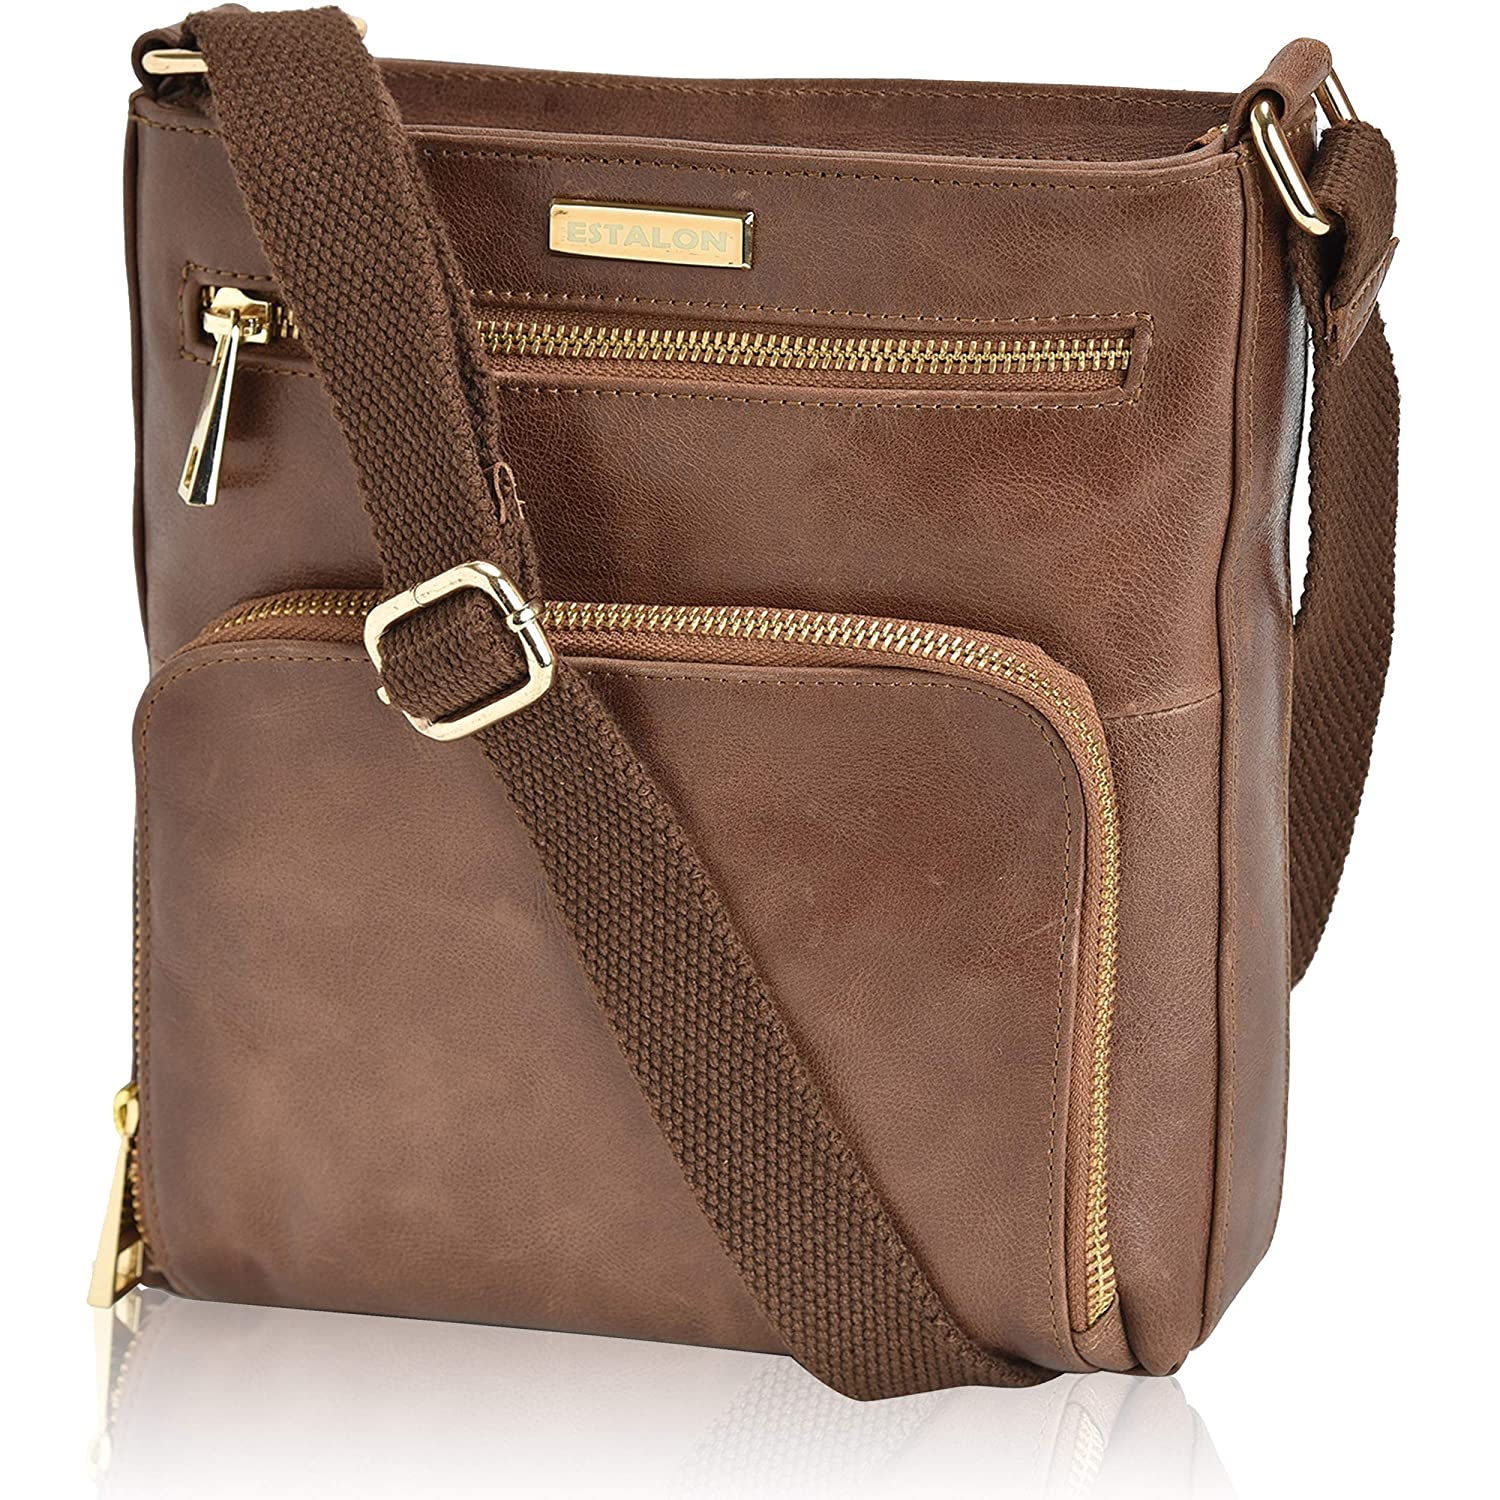 c71c91446ea Details about Leather Crossbody Purses and Handbags for Women-Premium  Crossover Bag Over the